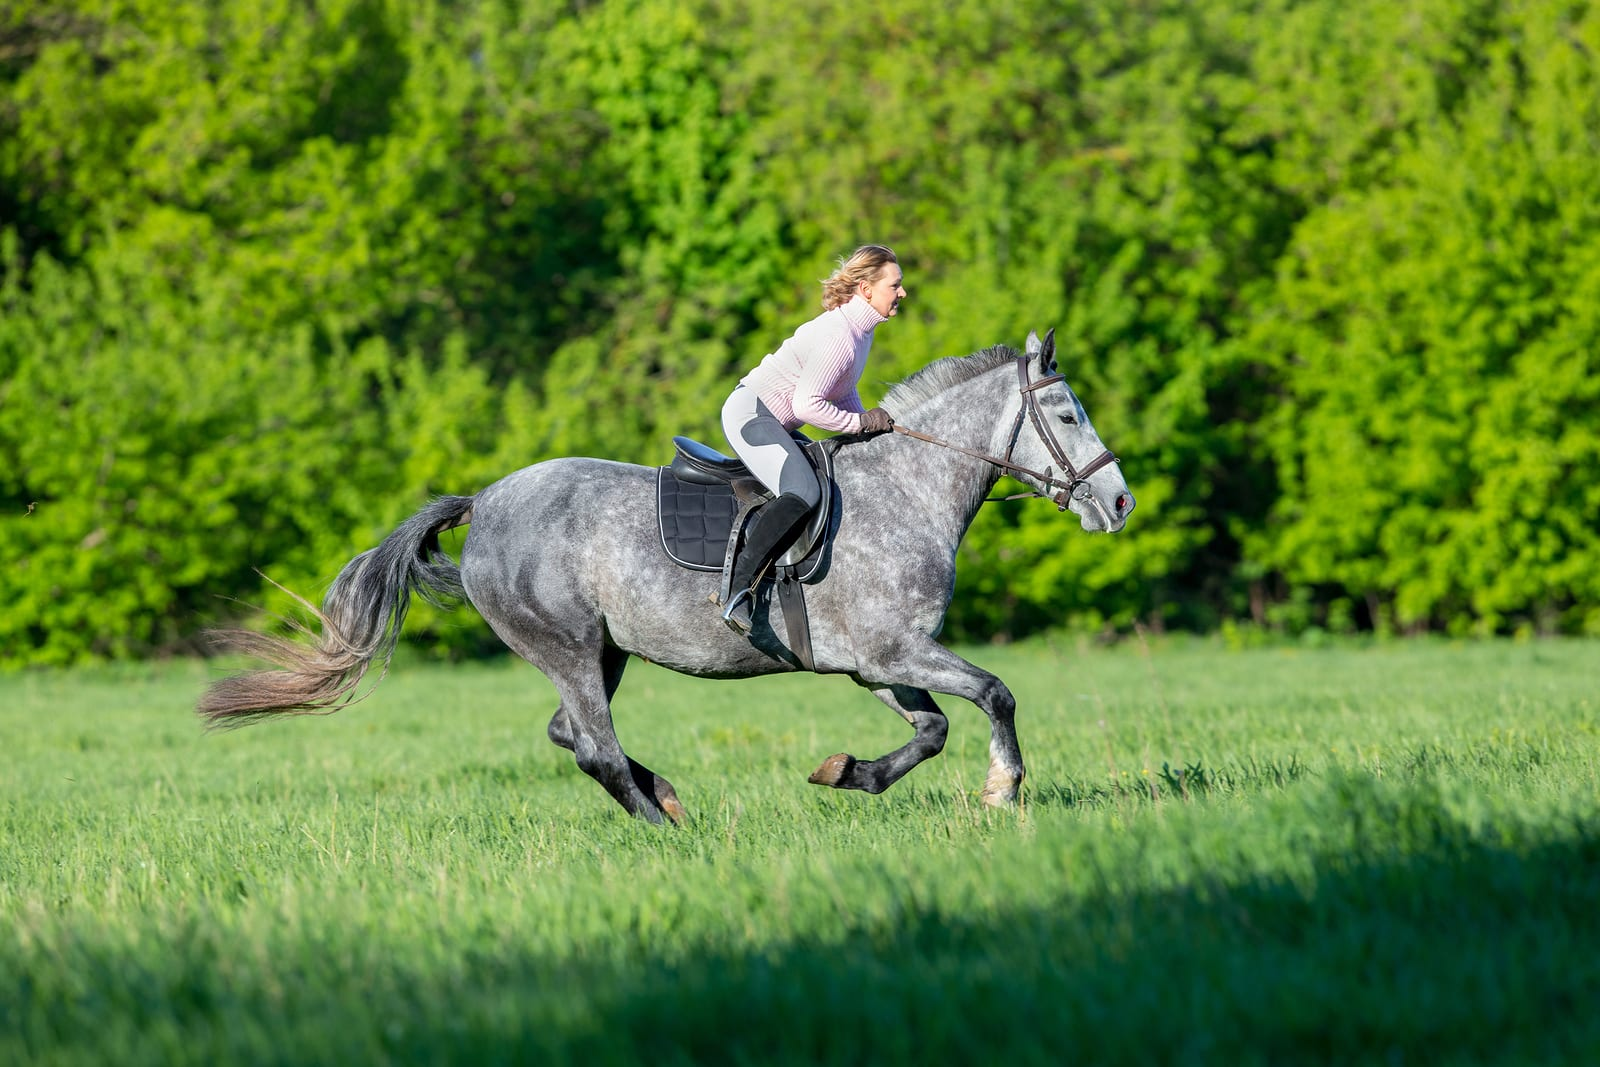 Woman riding a horse in summertime outdoors.